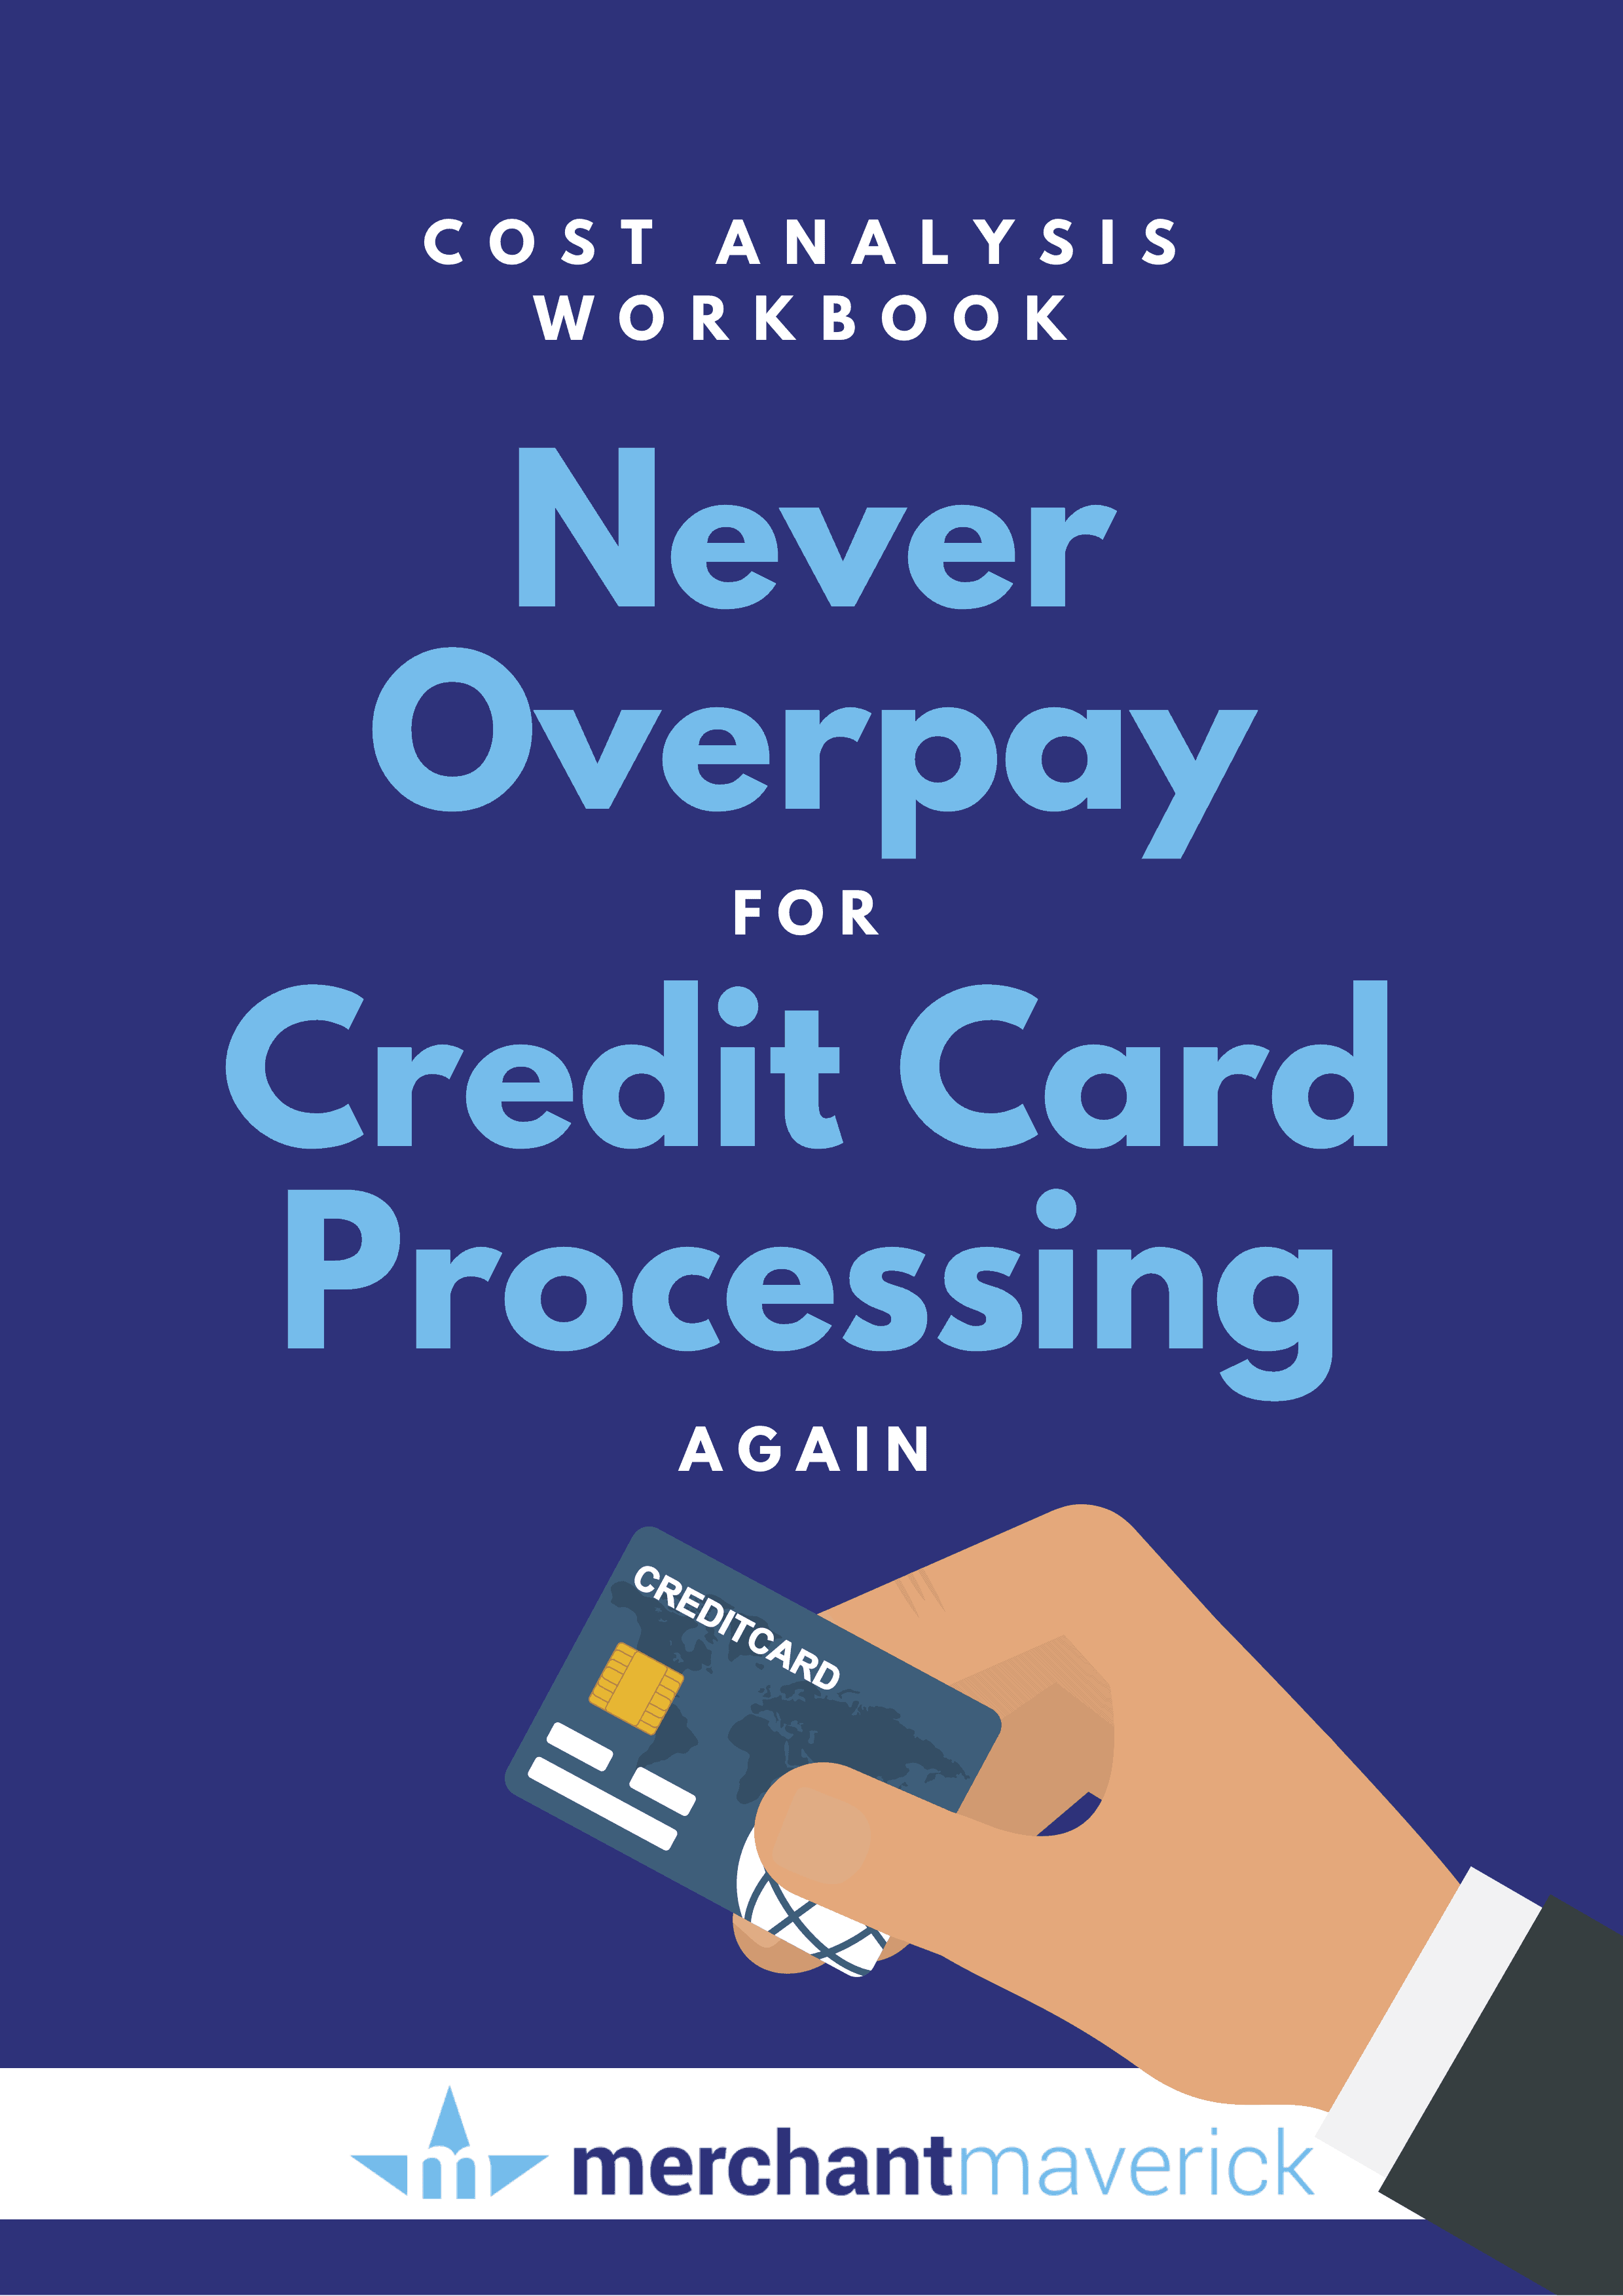 The Complete Guide to Credit Card Processing Fees & Rates 2019